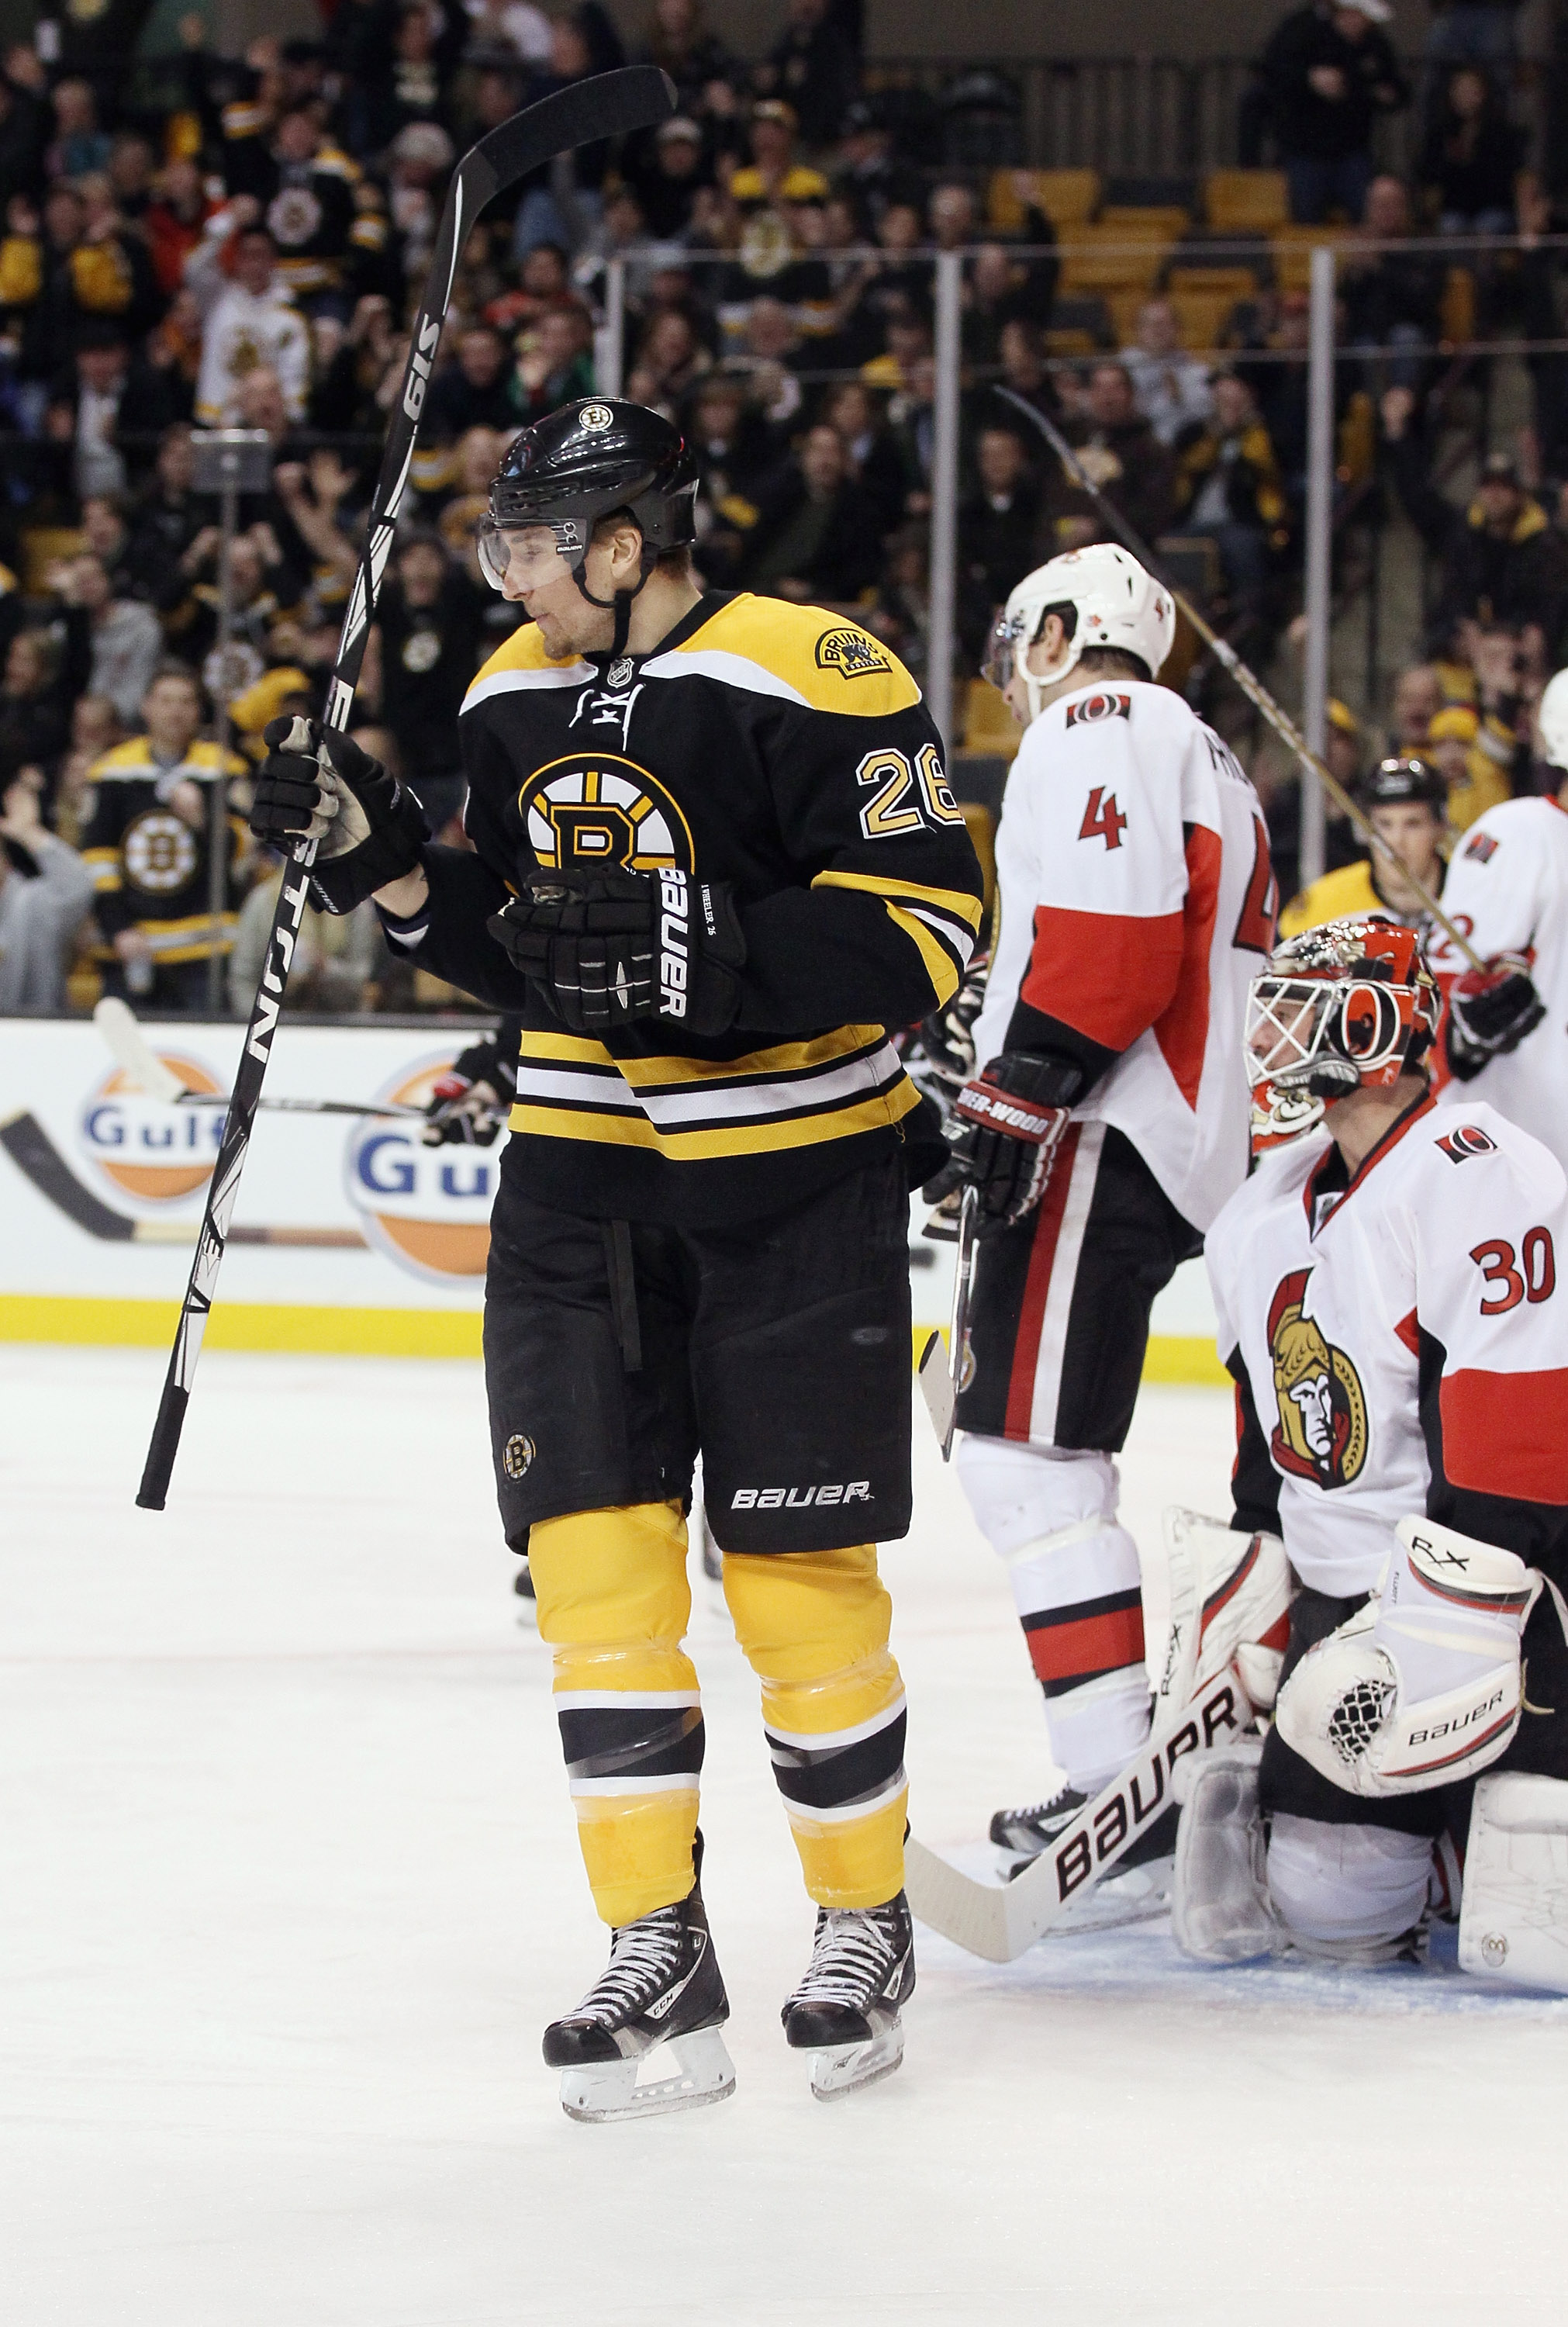 BOSTON, MA - JANUARY 11:  Blake Wheeler #26 of the Boston Bruins celebrates his goal as Brian Elliott #30 and Chris Phillips #4 of the Ottawa Senators stand by on January 11, 2011 at the TD Garden in Boston, Massachusetts.  (Photo by Elsa/Getty Images)